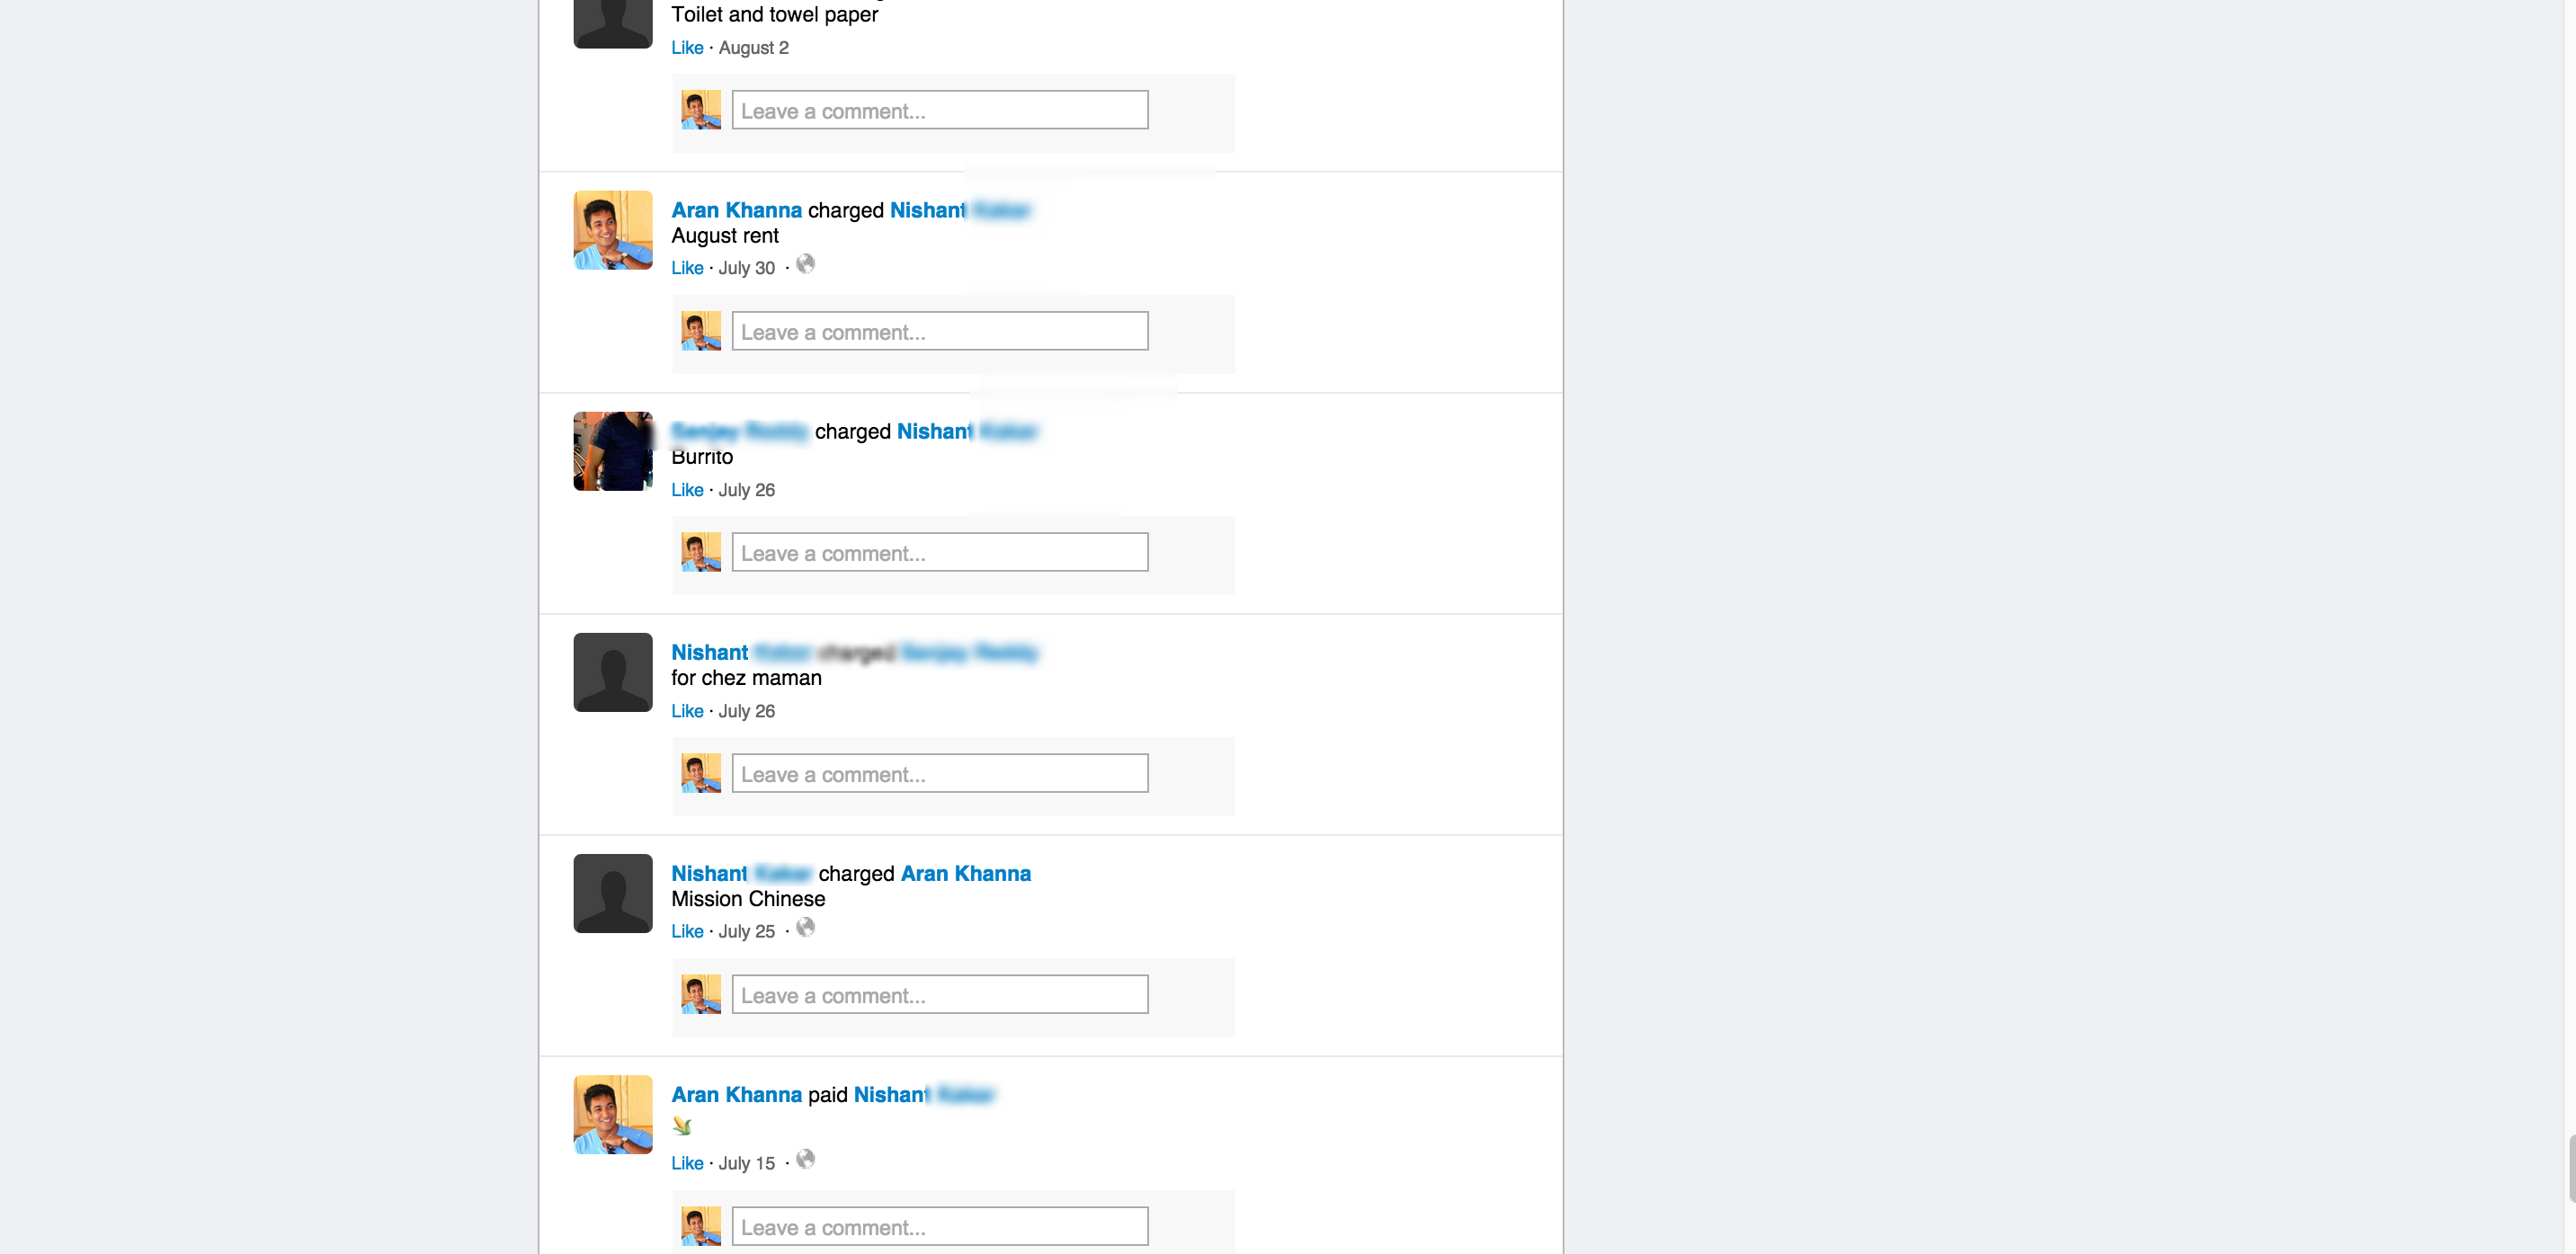 Have You Left a Money Trail on Venmo? - The Startup - Medium